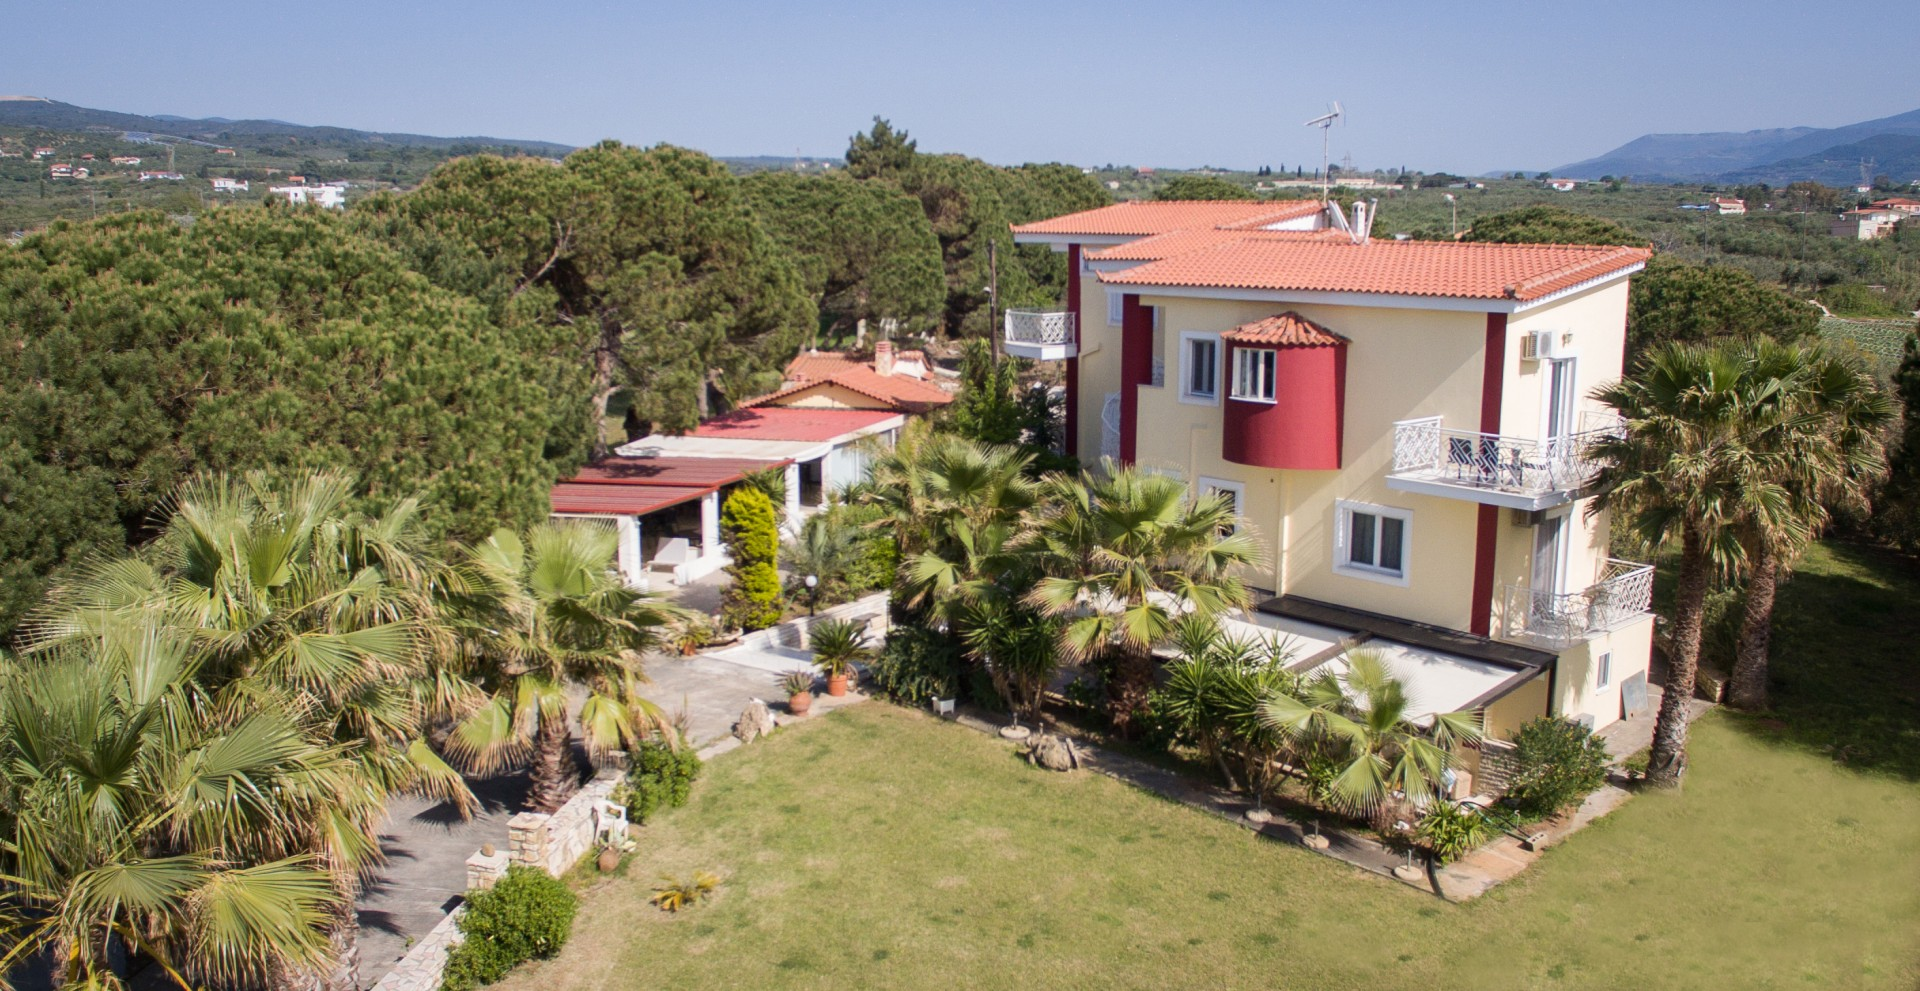 Aerial View of Irida Resort Suites